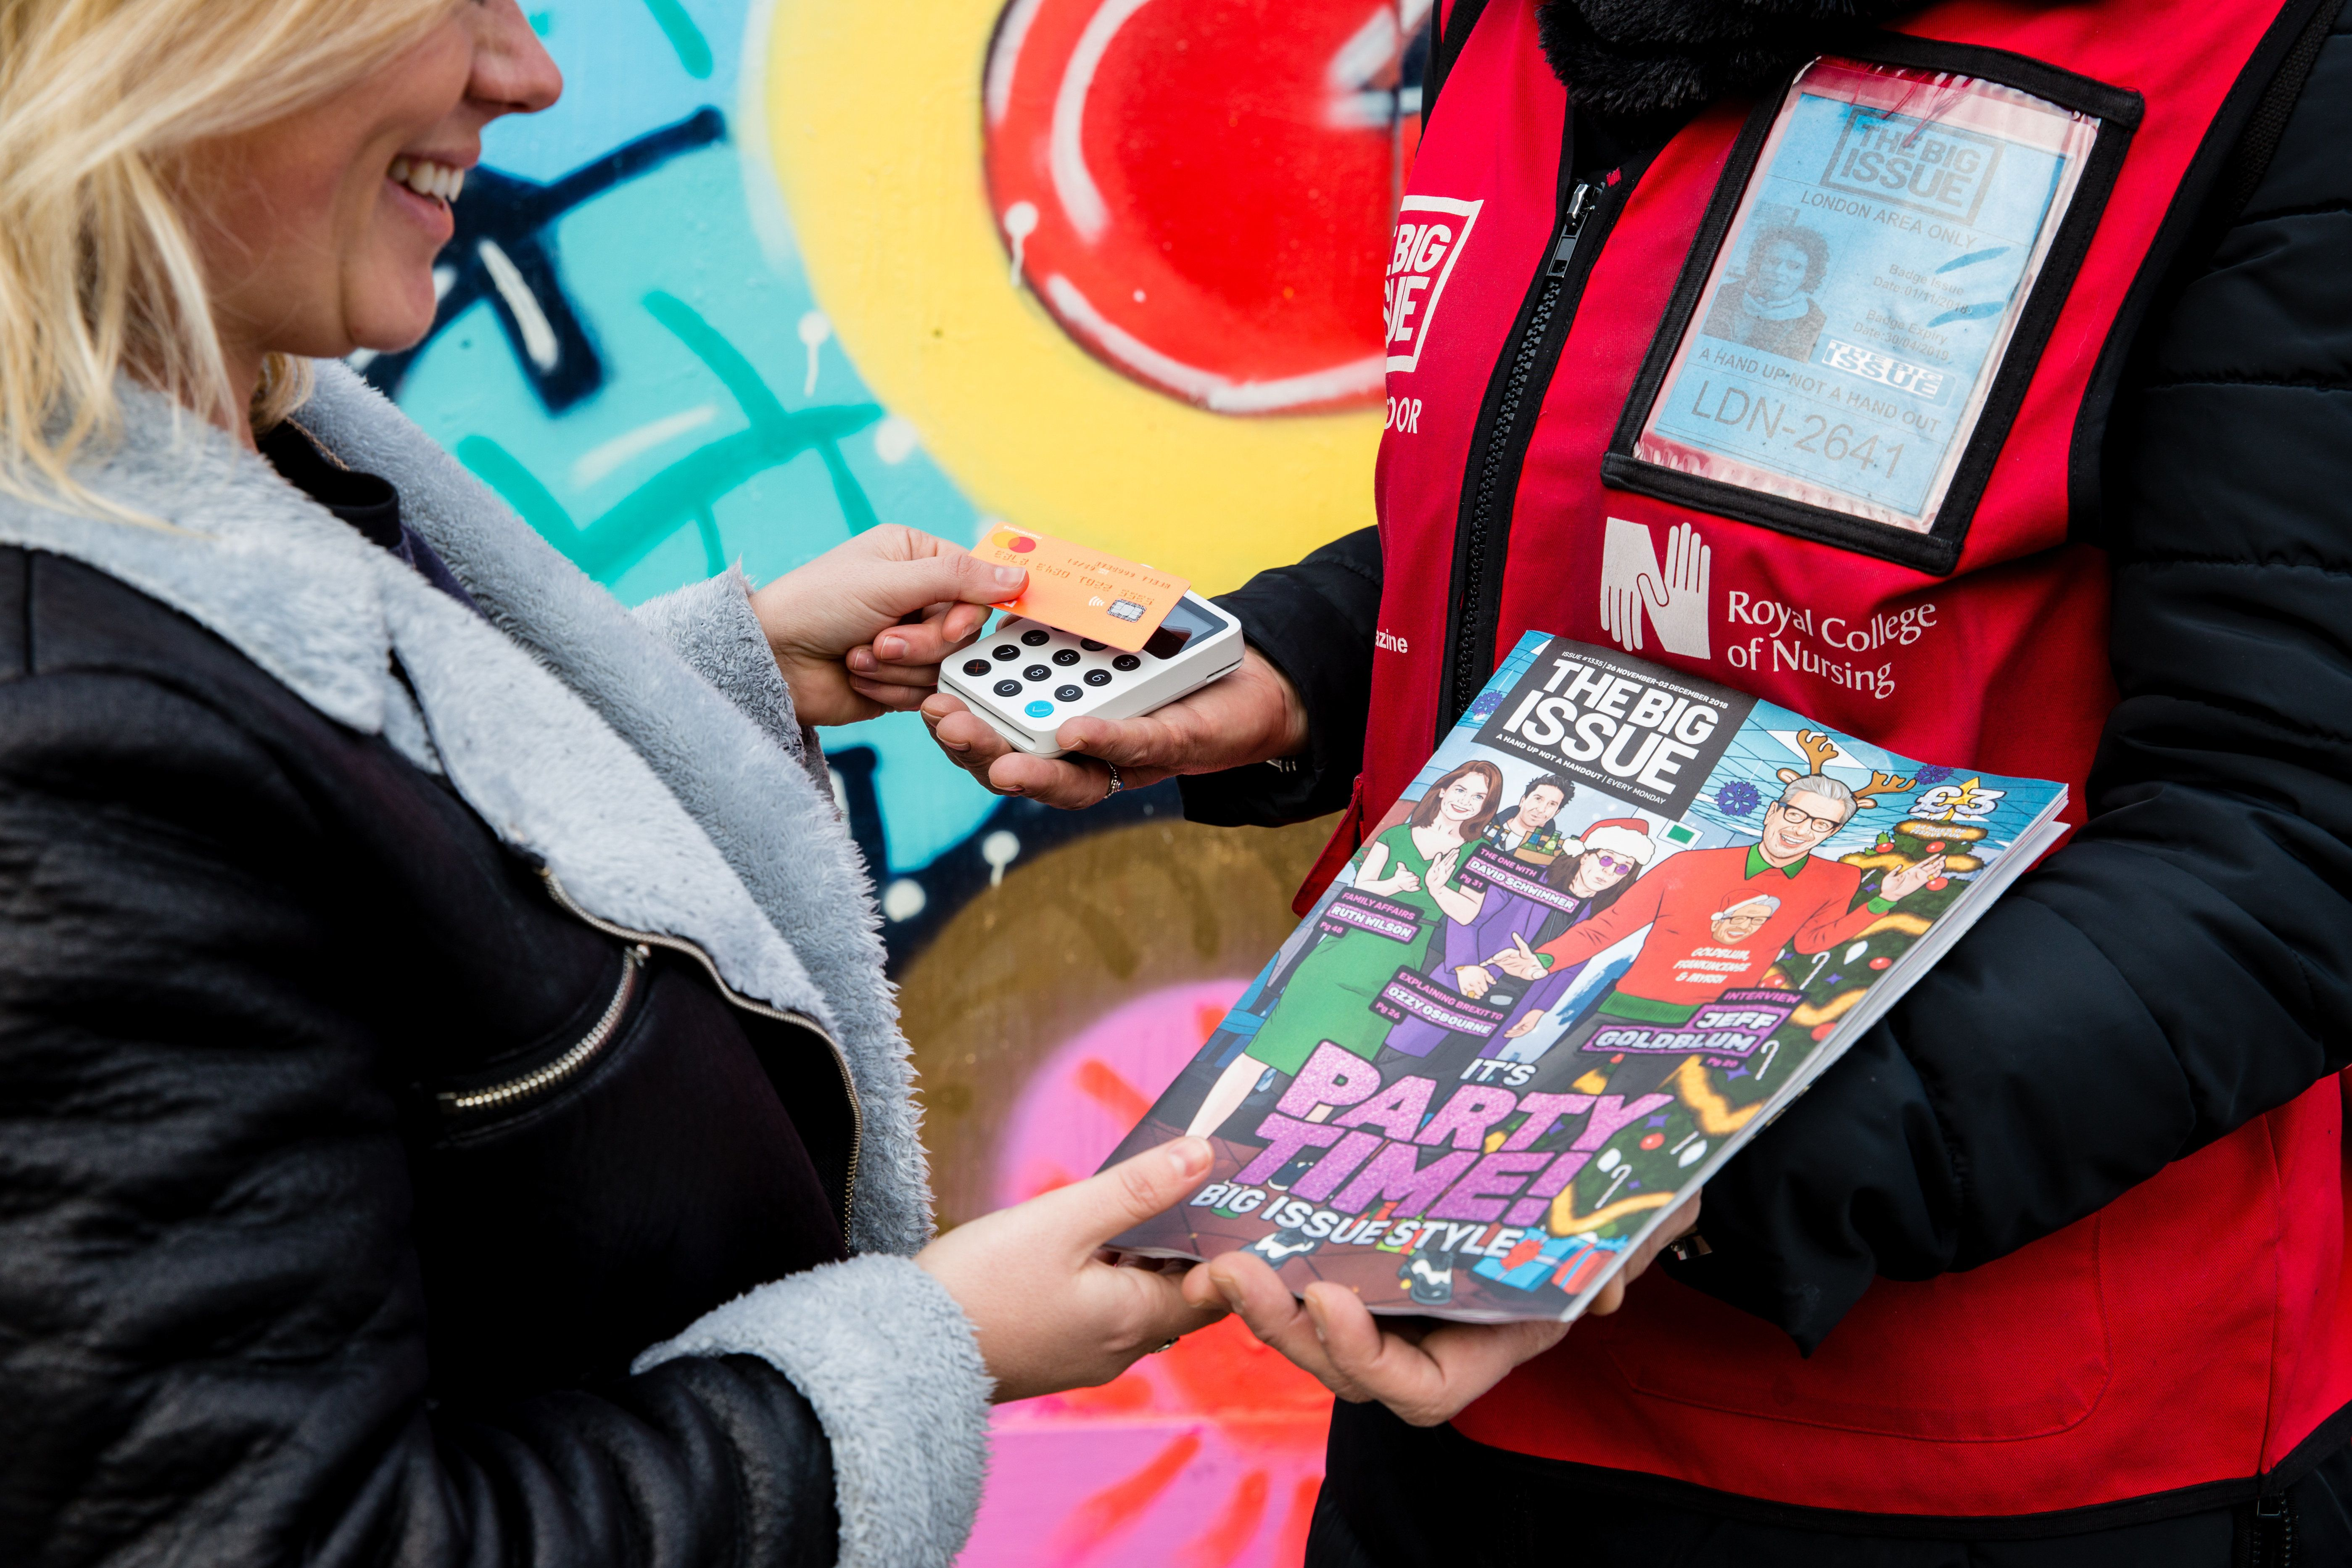 You Can Now Pay For The Big Issue With Contactless